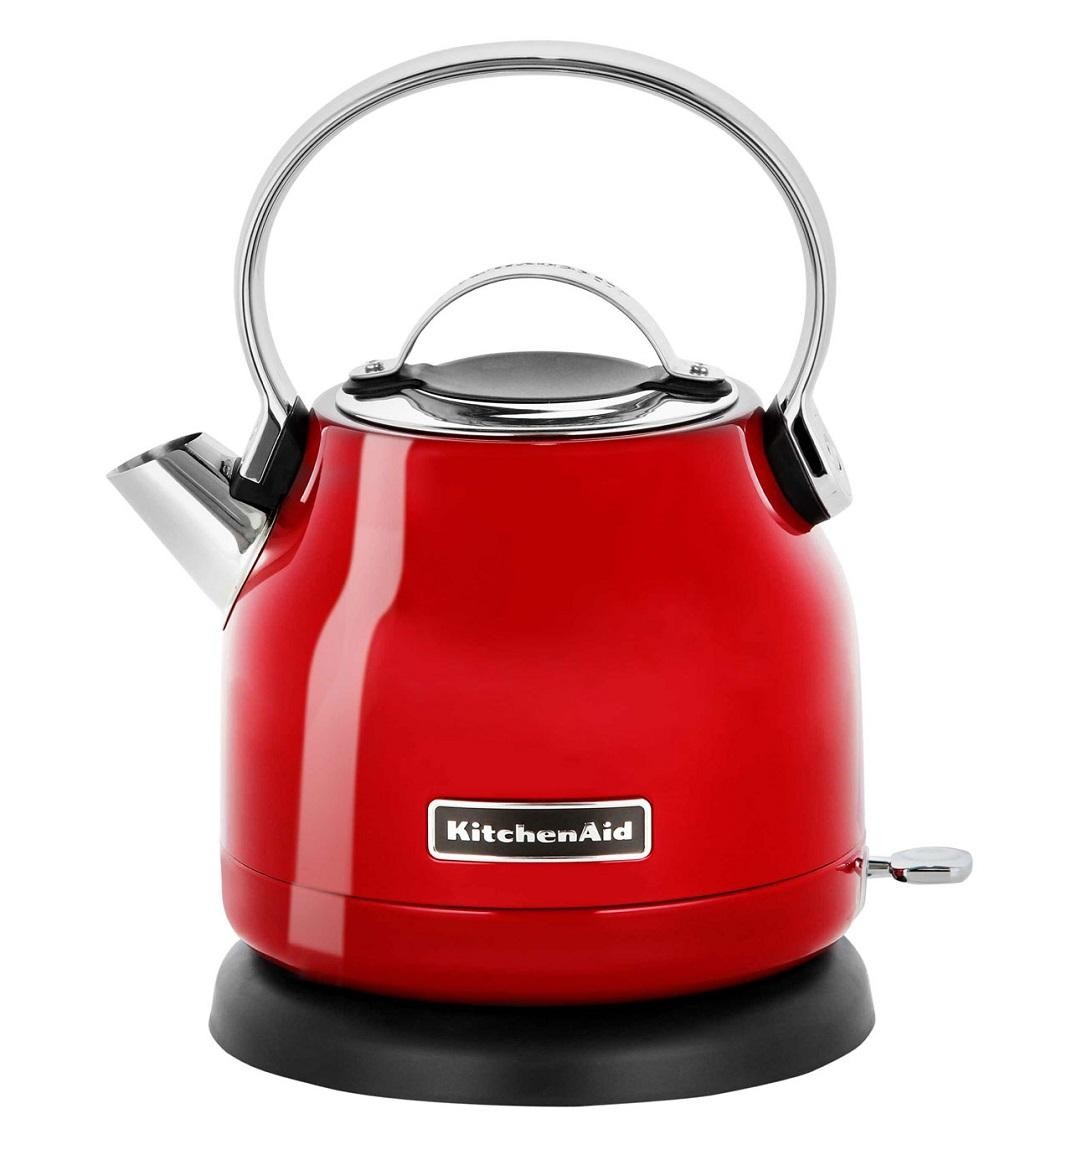 kitchenaid-5KEK1222BER.jpg